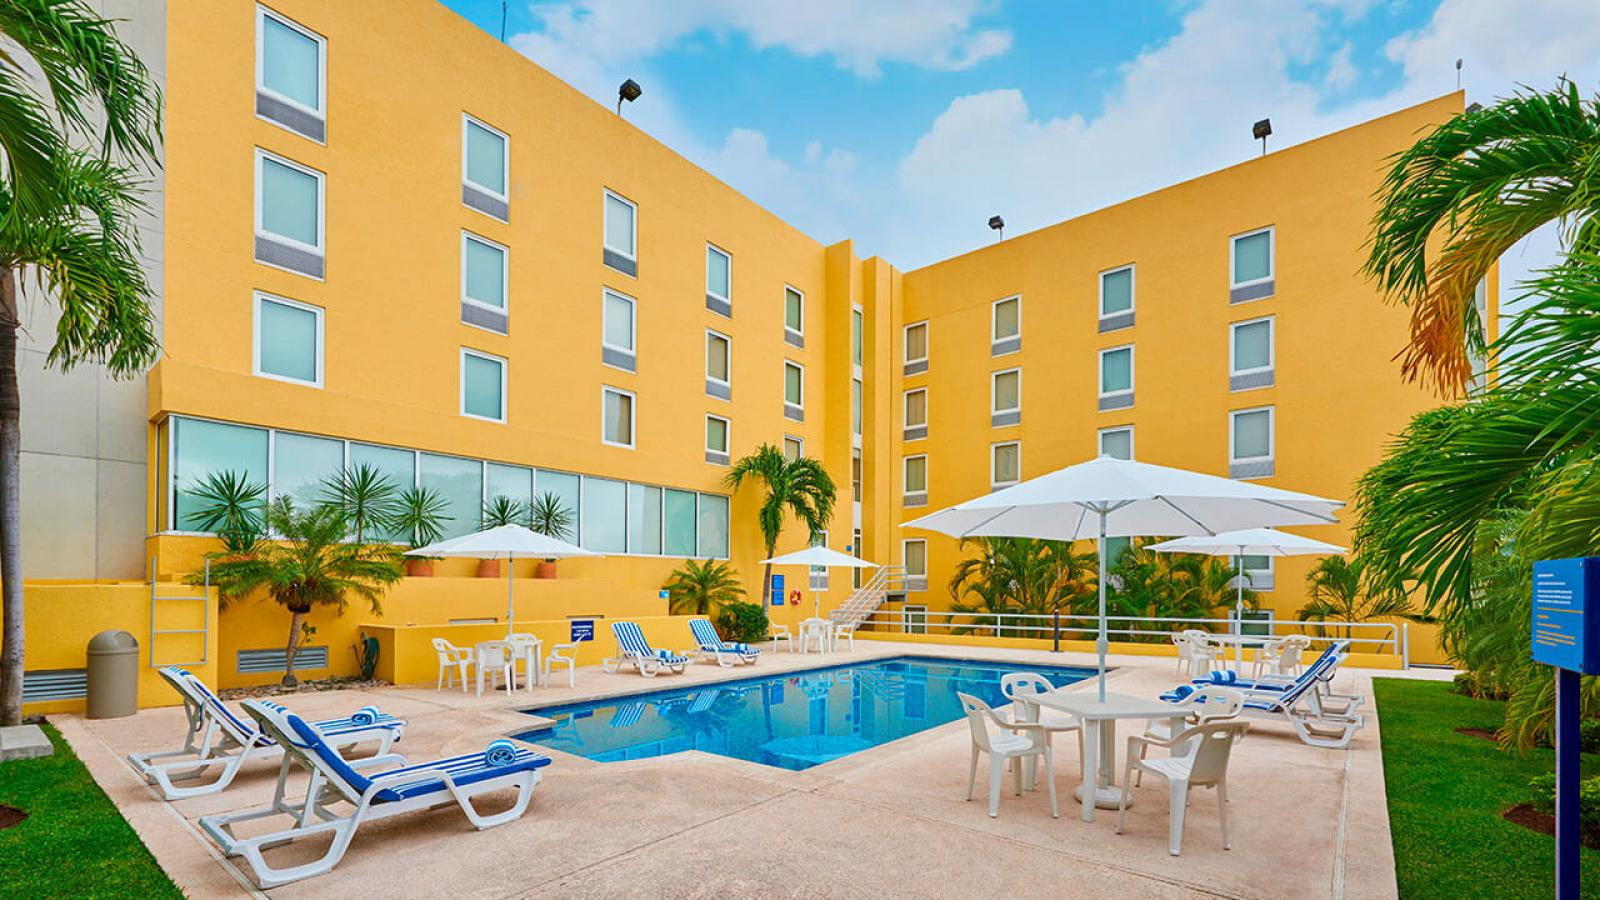 City express tuxtla guti rrez city express hotels for Sites hotel